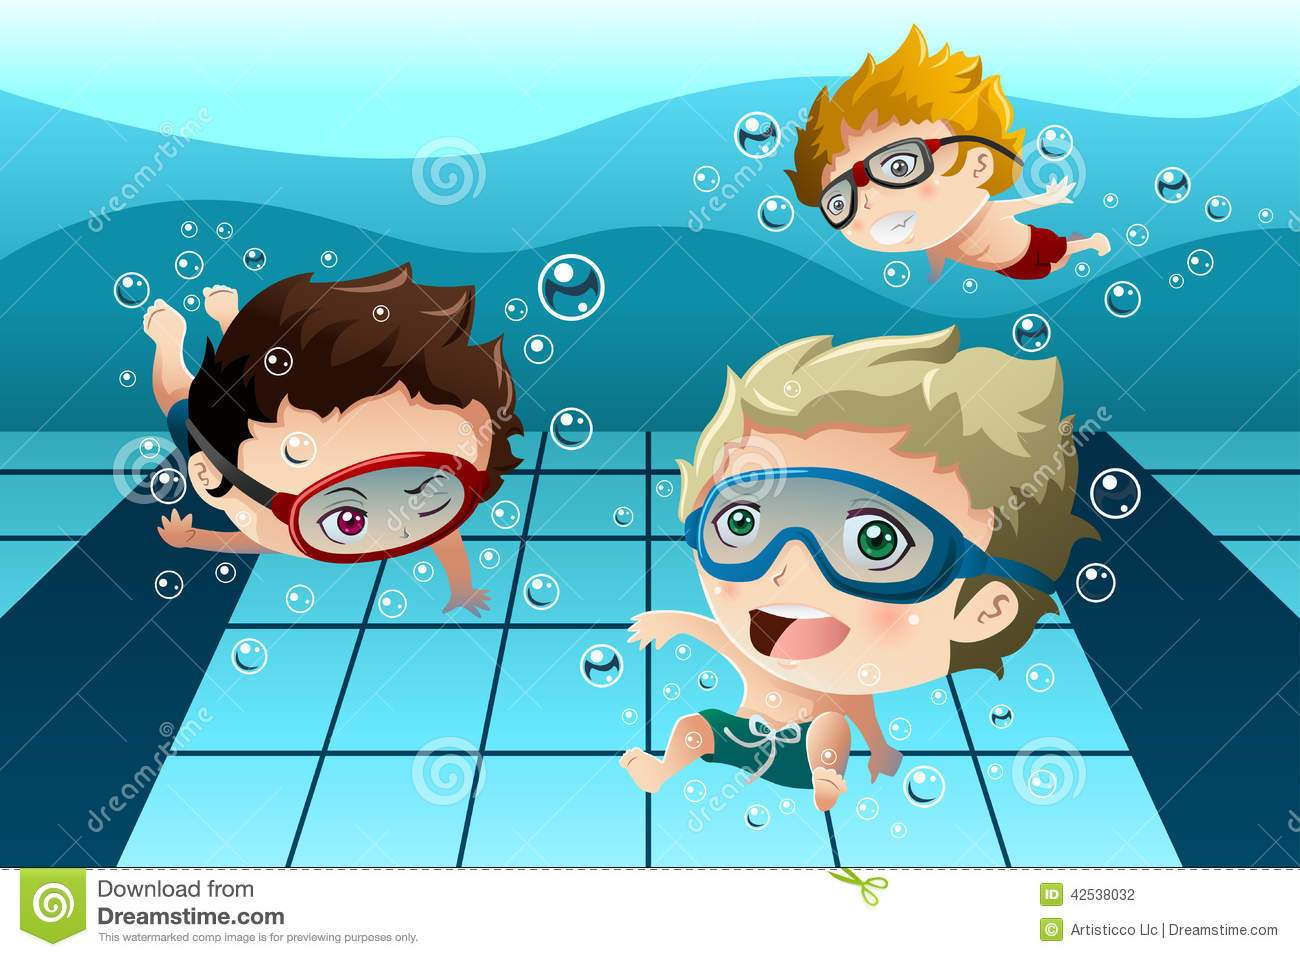 Animated swimming pool clipart 4 » Clipart Portal.